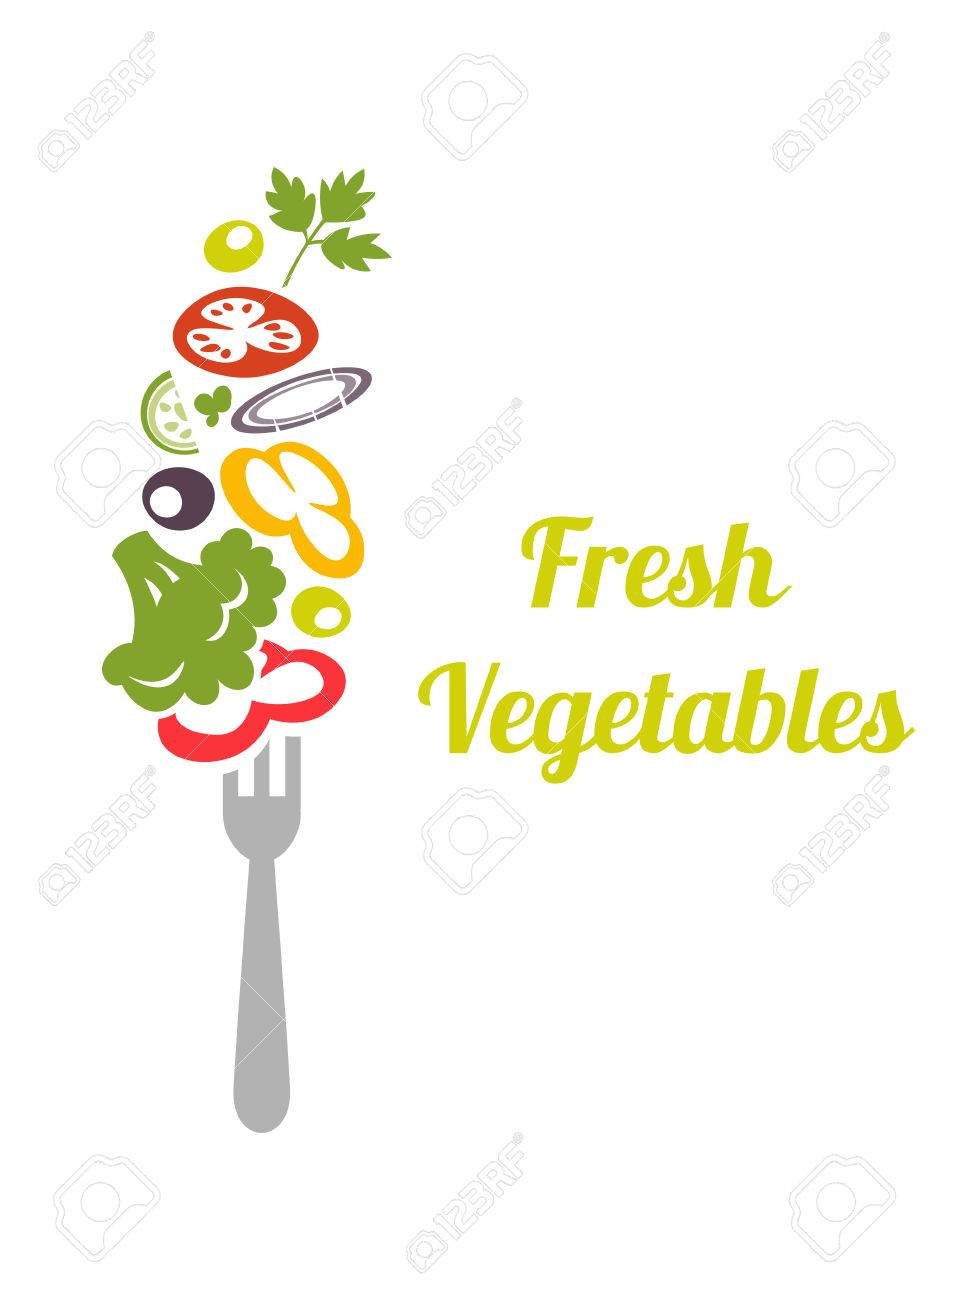 Fresh mixed vegetables on fork. design vector template. concept icon. Chopped vegetables tomatoes, broccoli, lettuce, onion, cucumber, peppers, skewered on a fork. - 51914739